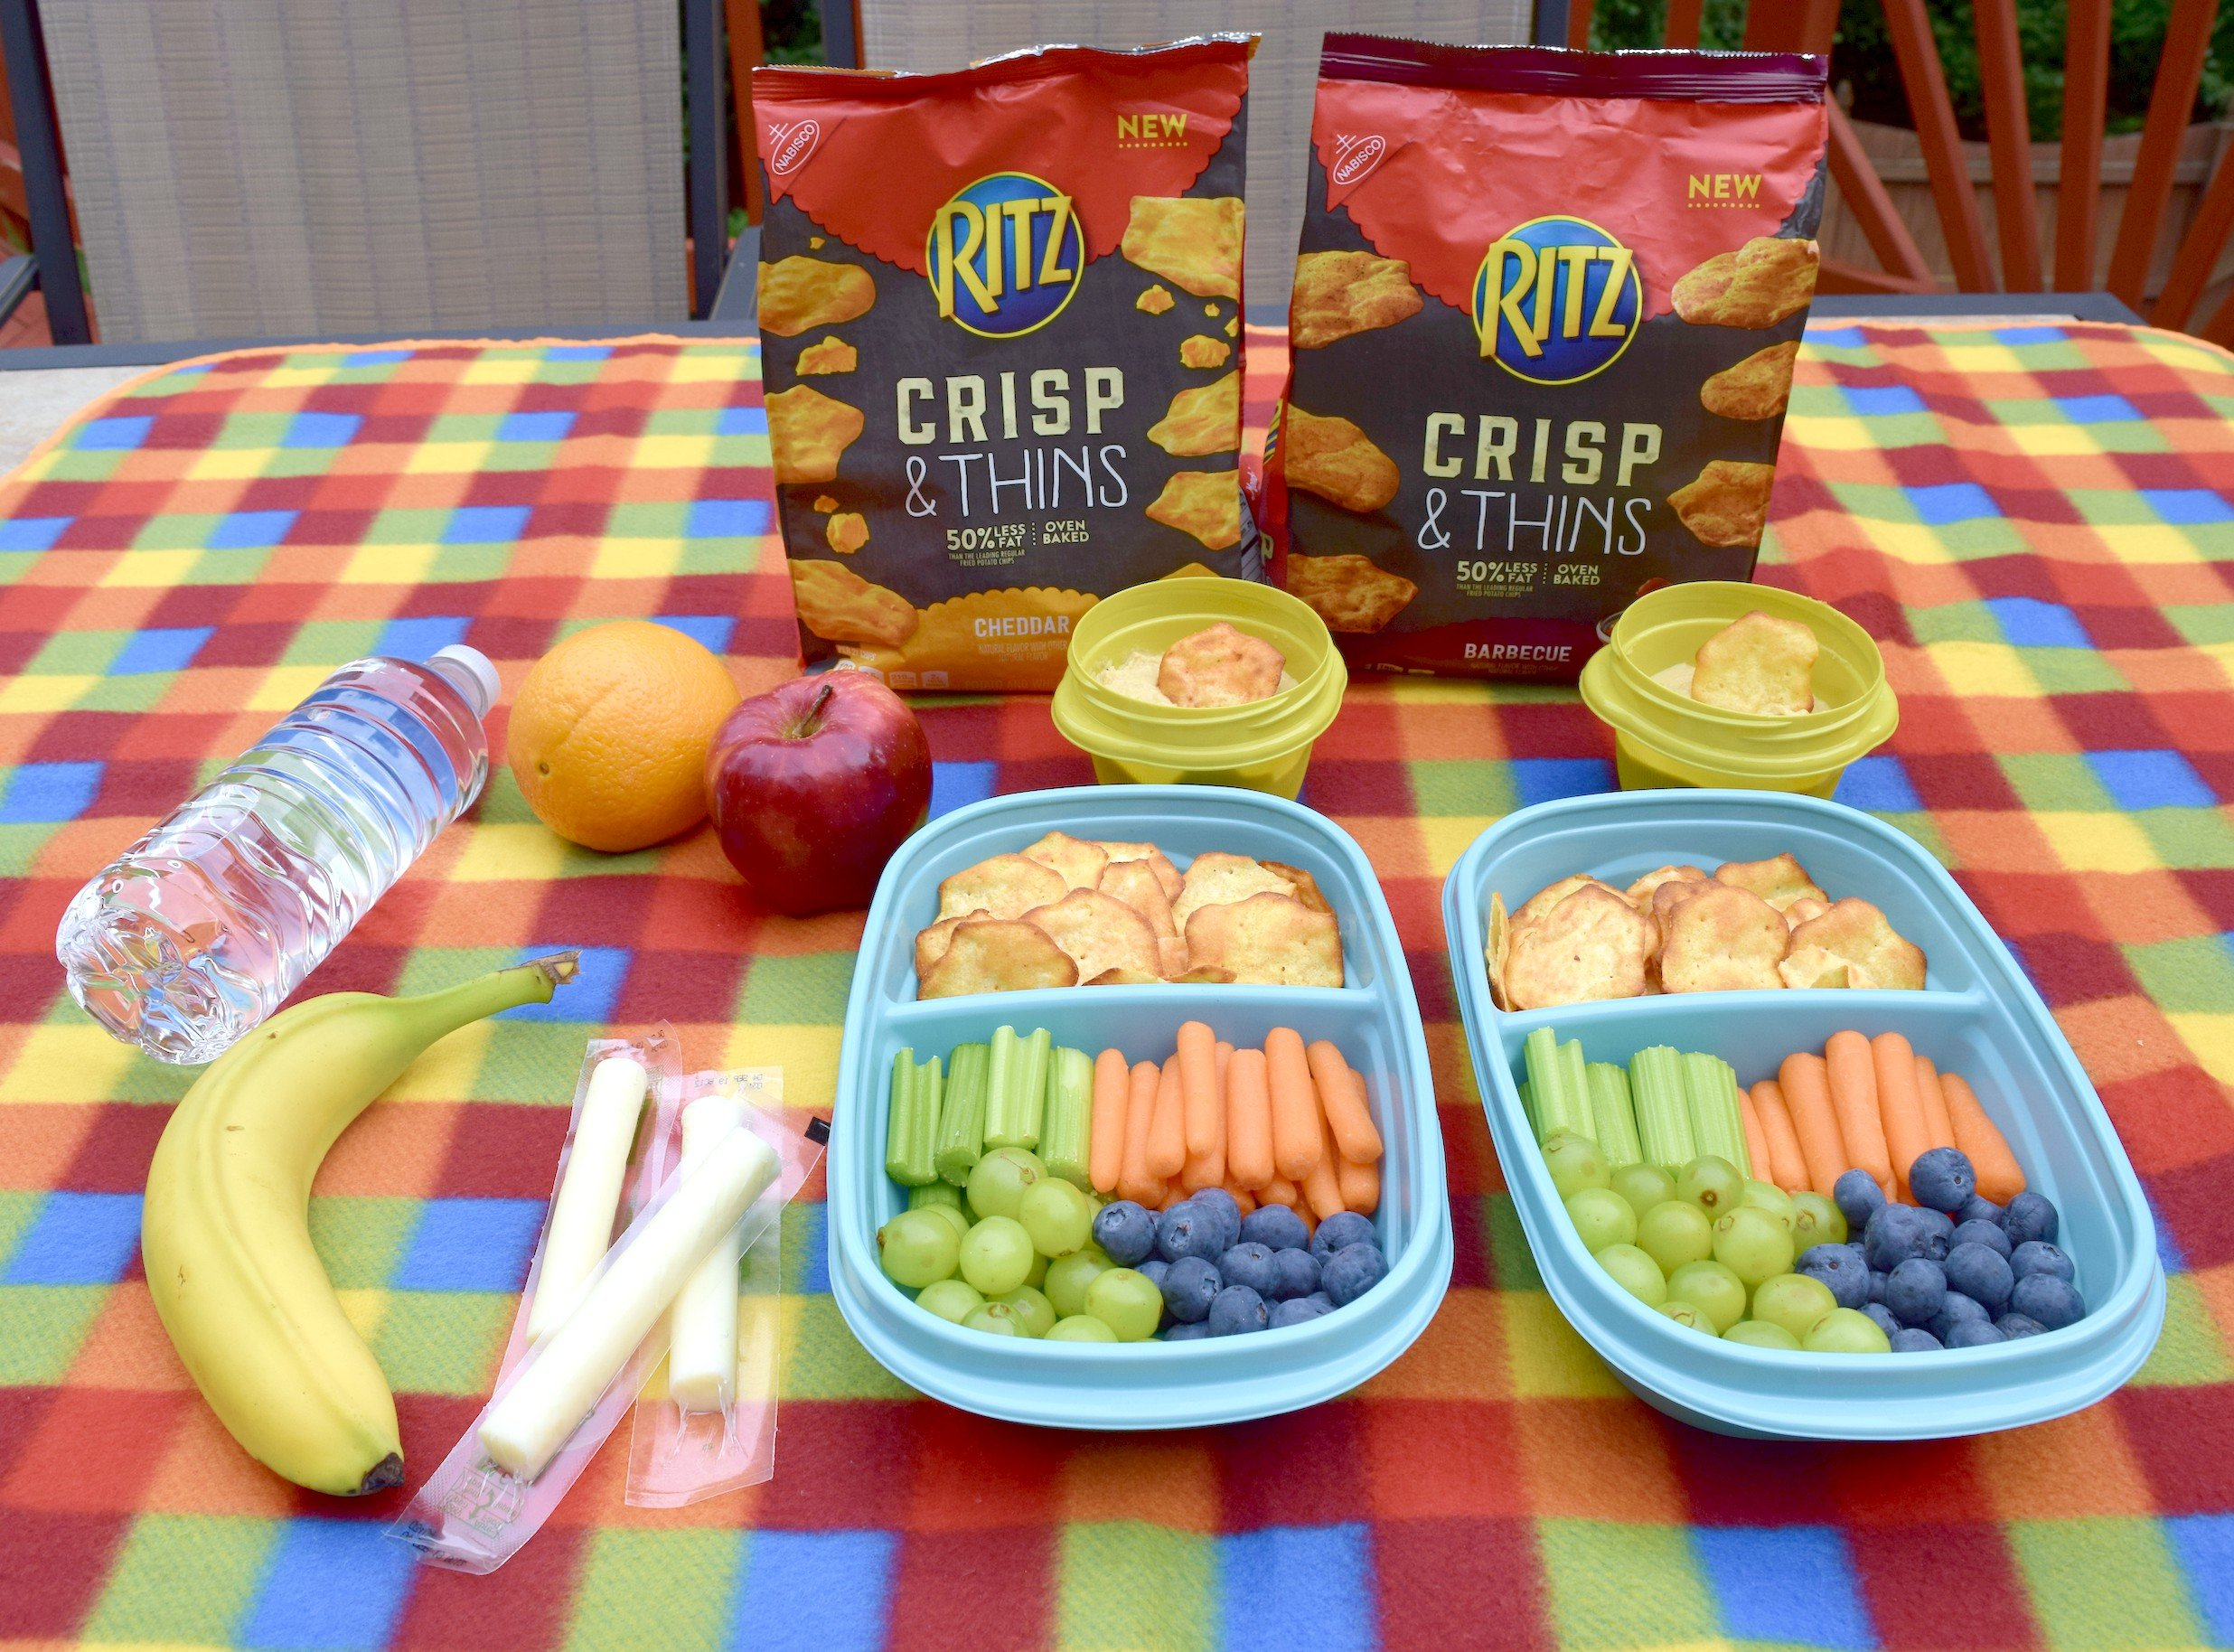 RITZ Crisp & Thins crackers are a great, convenient snacks for family road trips, picnics or to serve at any gatherings!